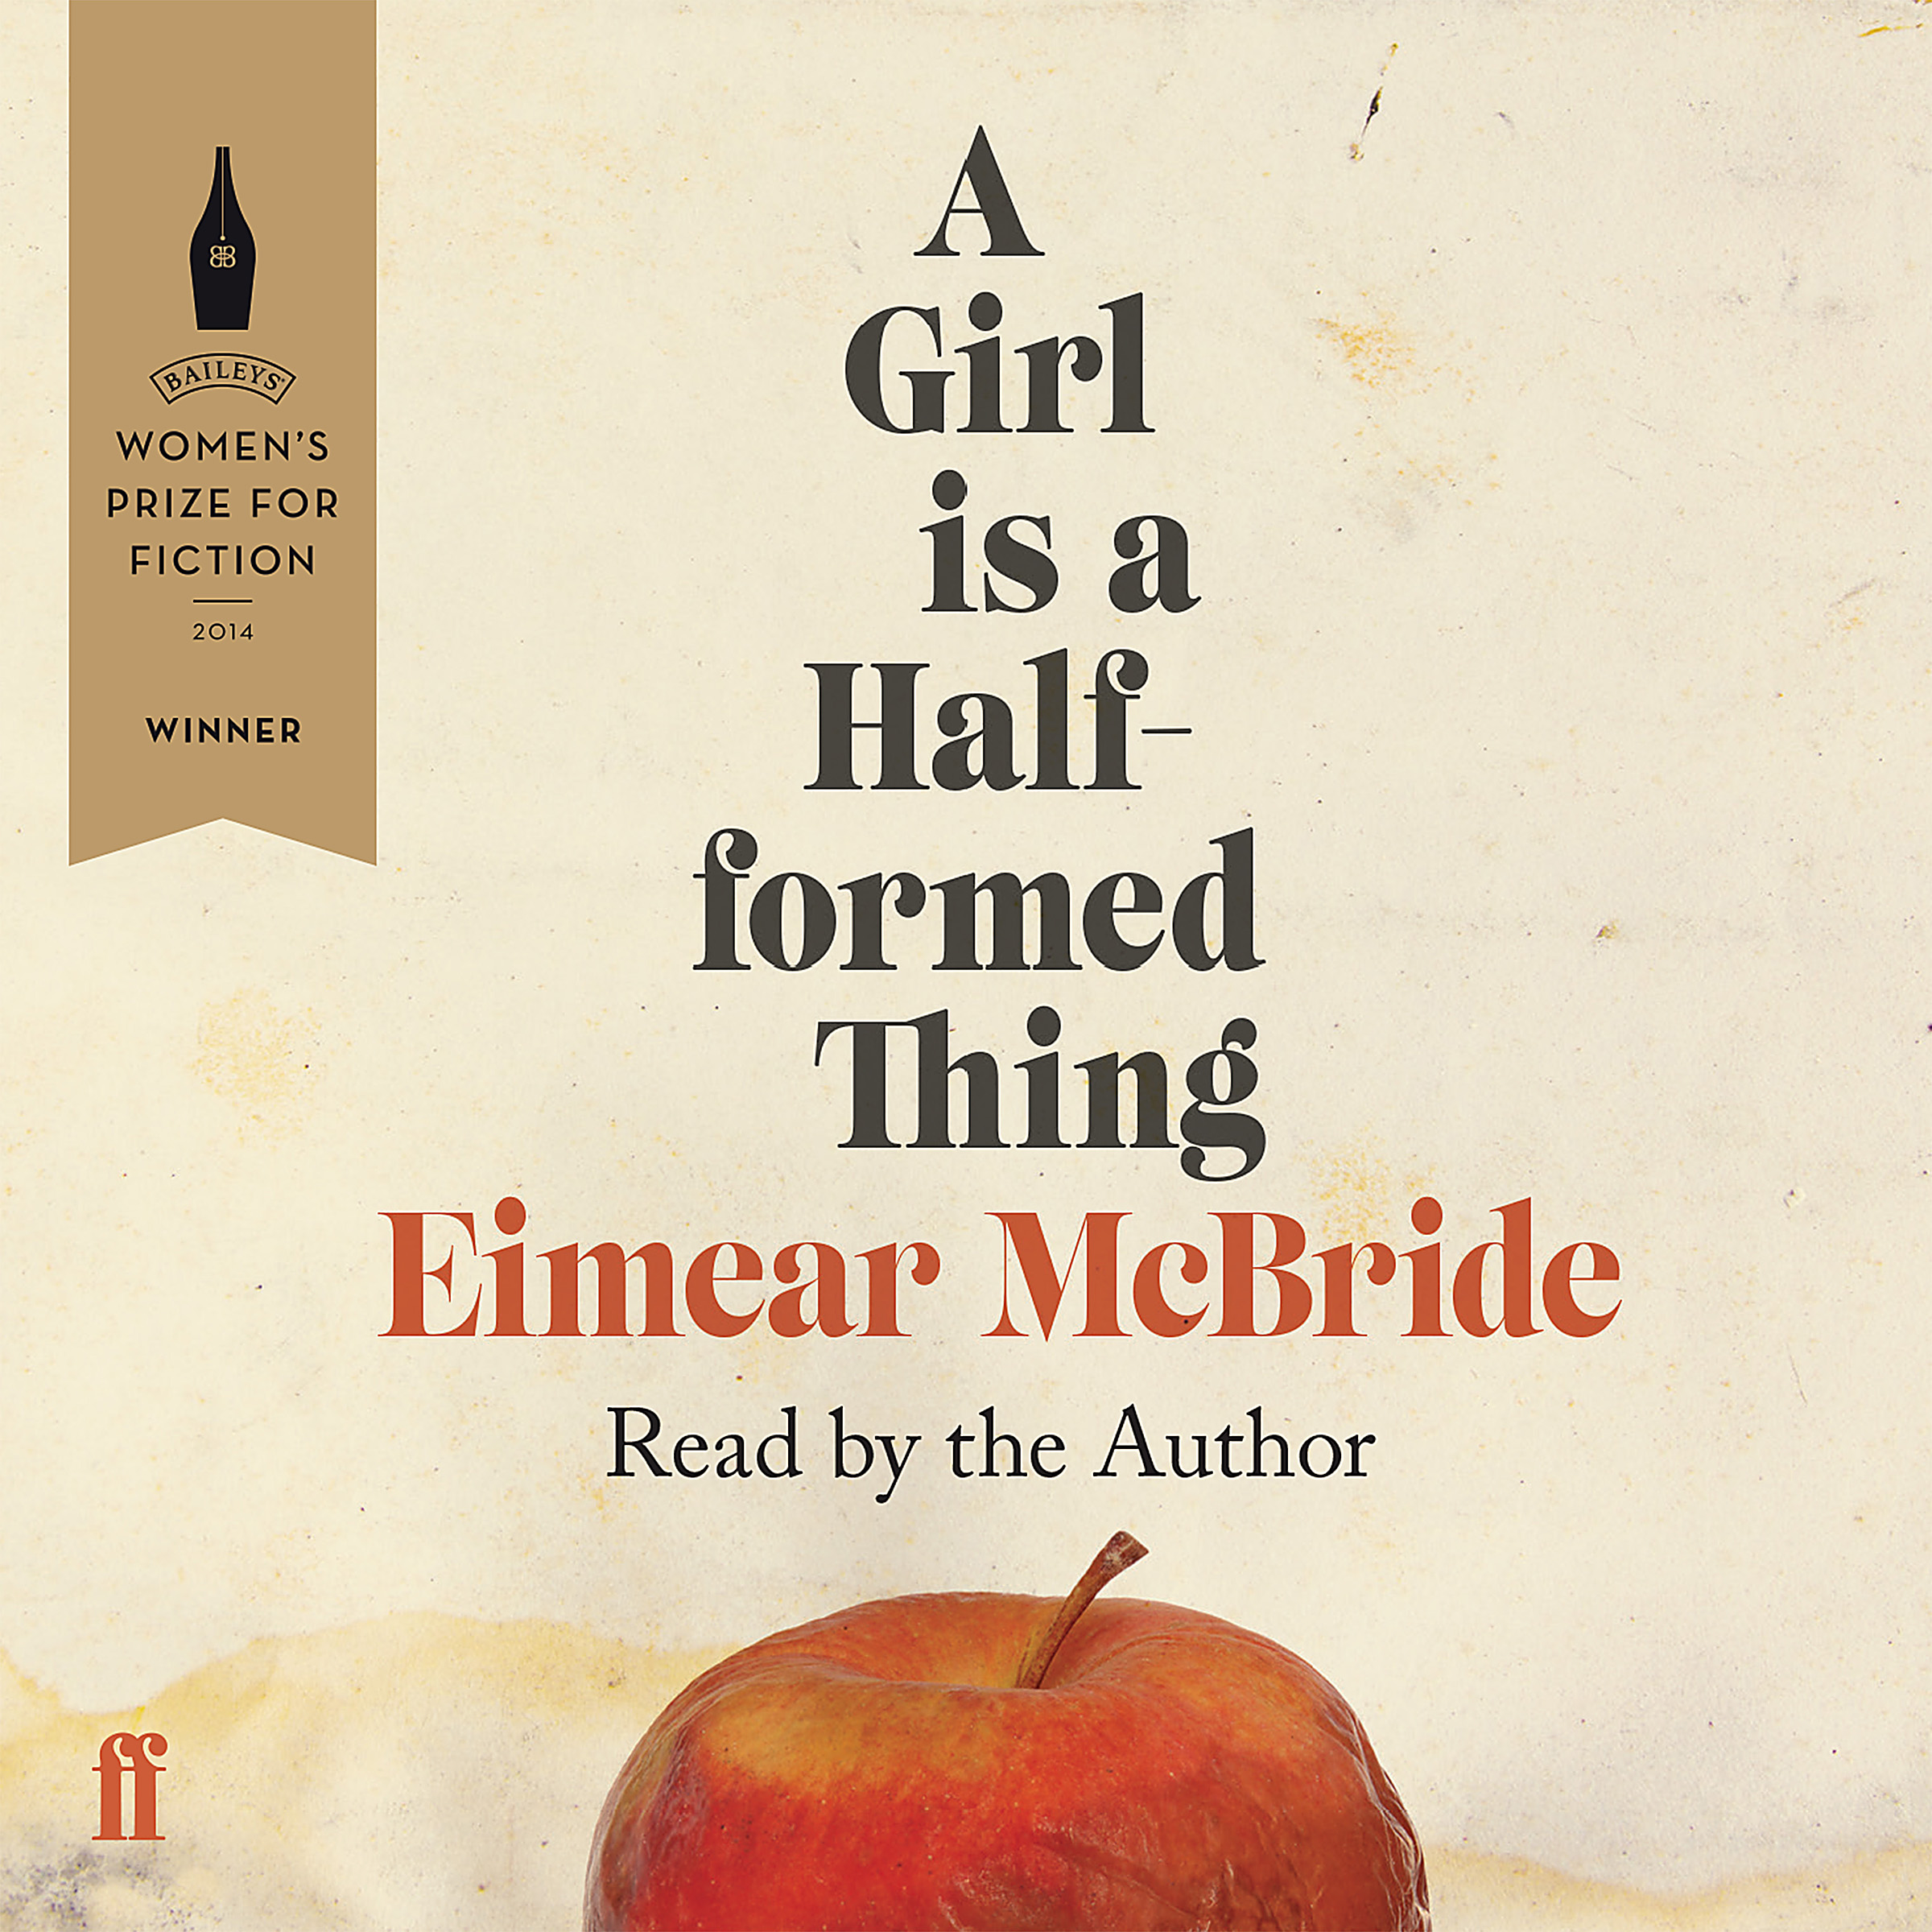 Elmear McBride - A Girl is a Half-formed Thing